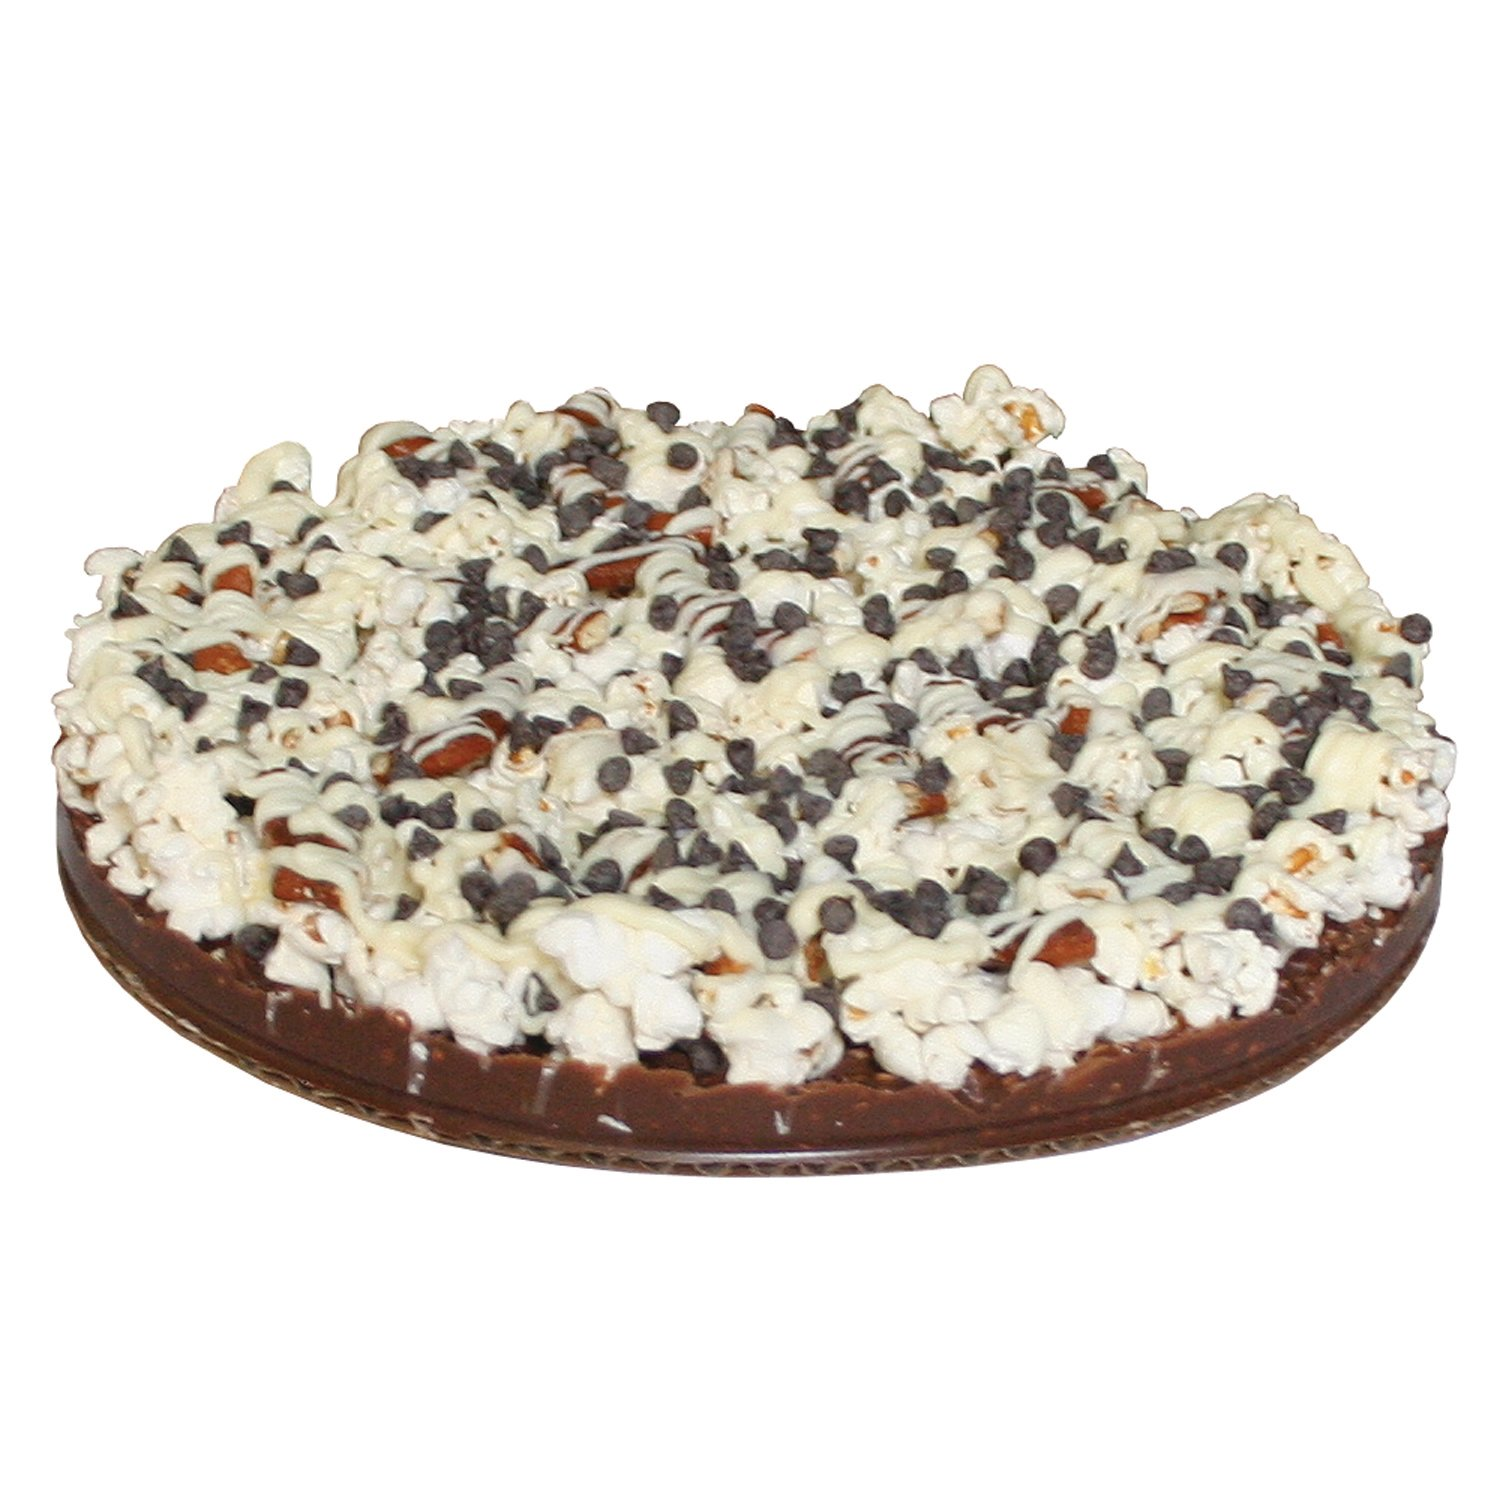 "Gourmet Chocolate Pizza with Pizazz™ 10"" (Supreme w/ Chocolate Chips) PZSUCH"